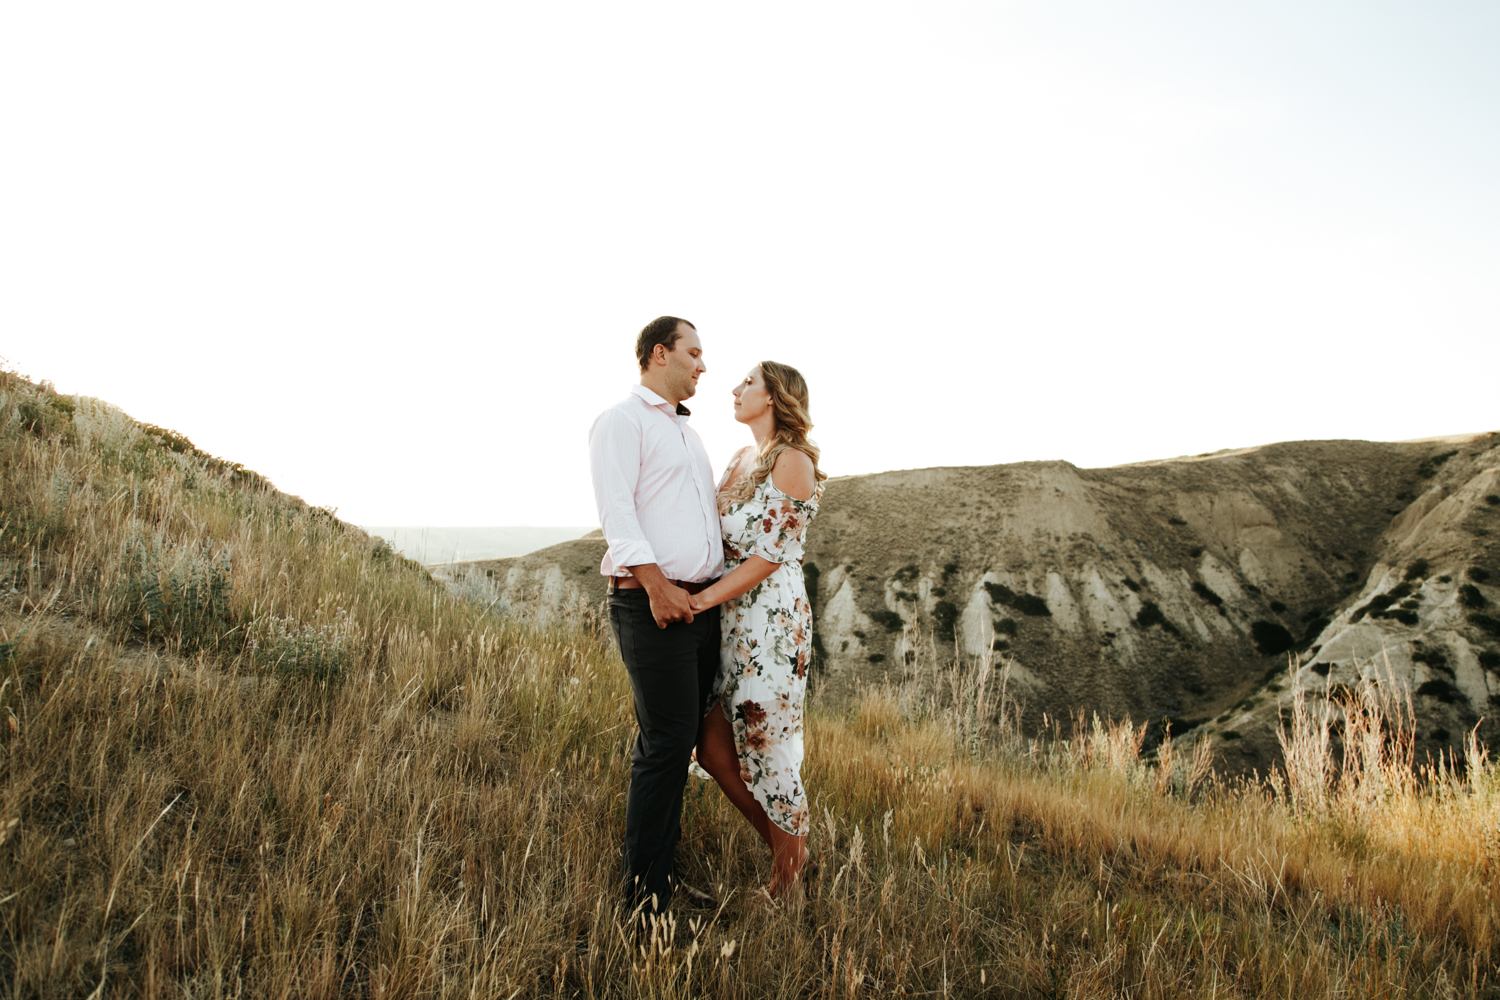 lethbridge-wedding-photographer-love-and-be-loved-photography-katie-kelli-engagement-picture-image-photo-44.jpg